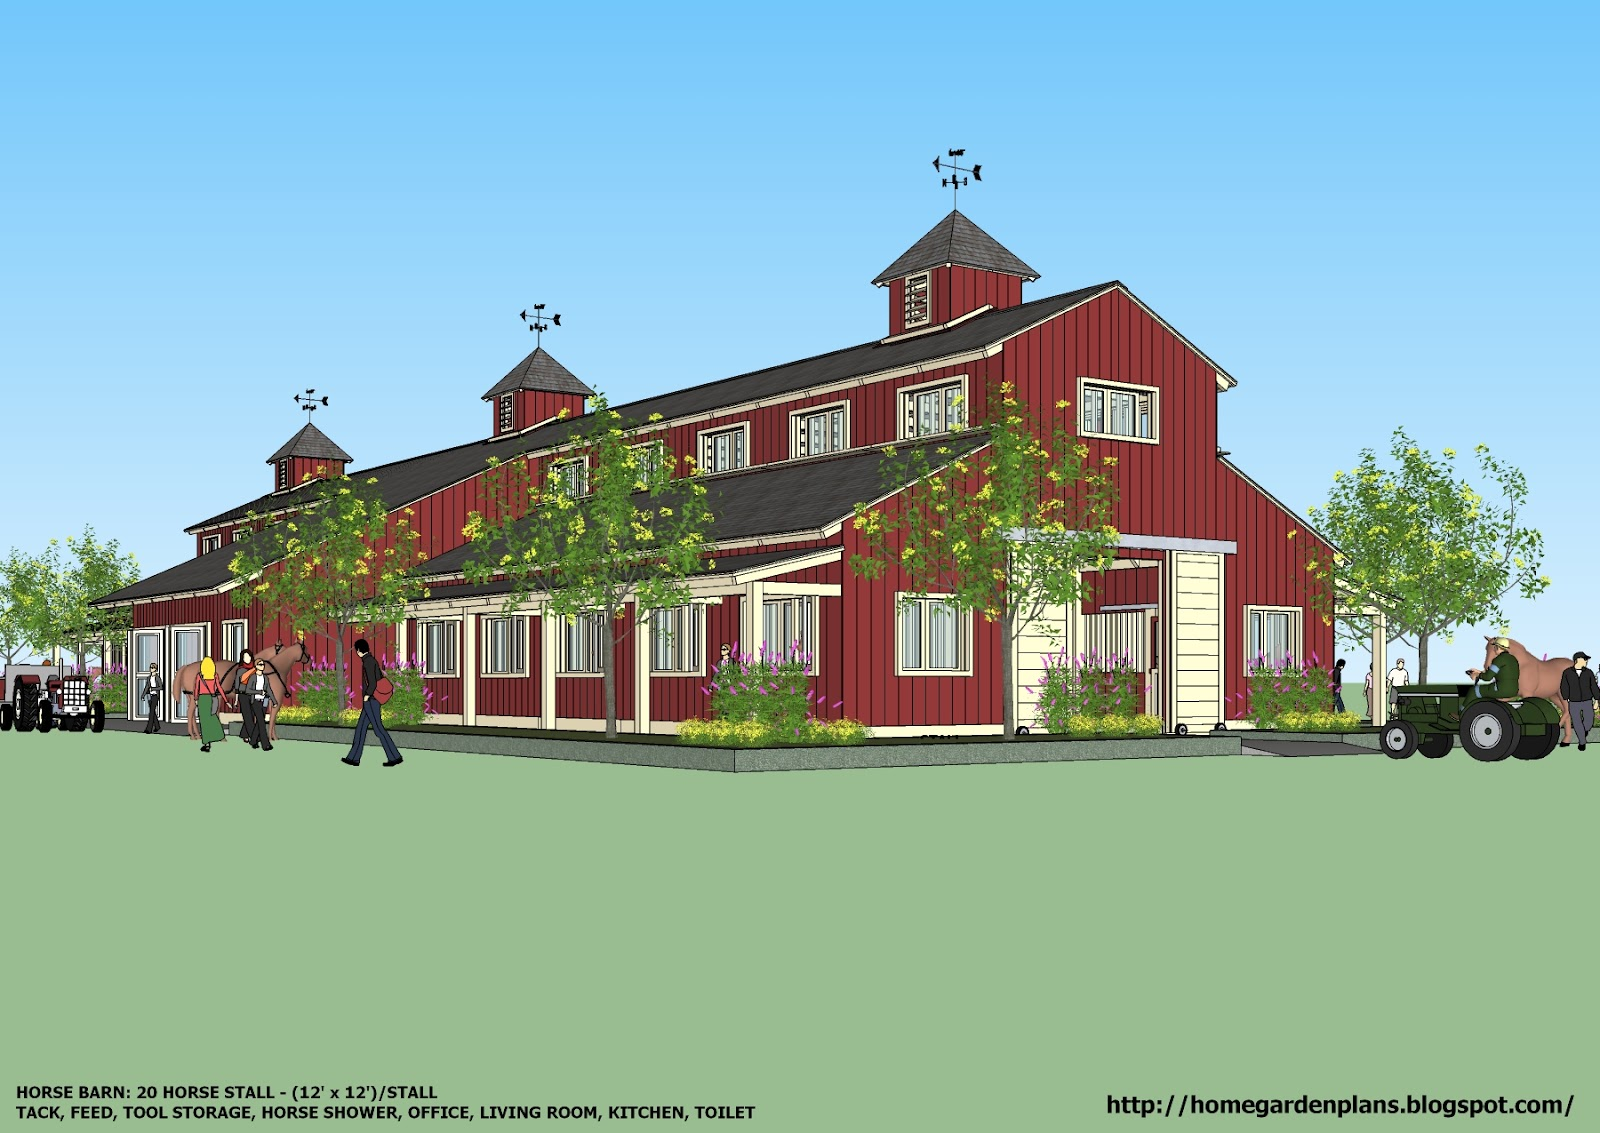 Home garden plans horse barns for Barn architecture plans